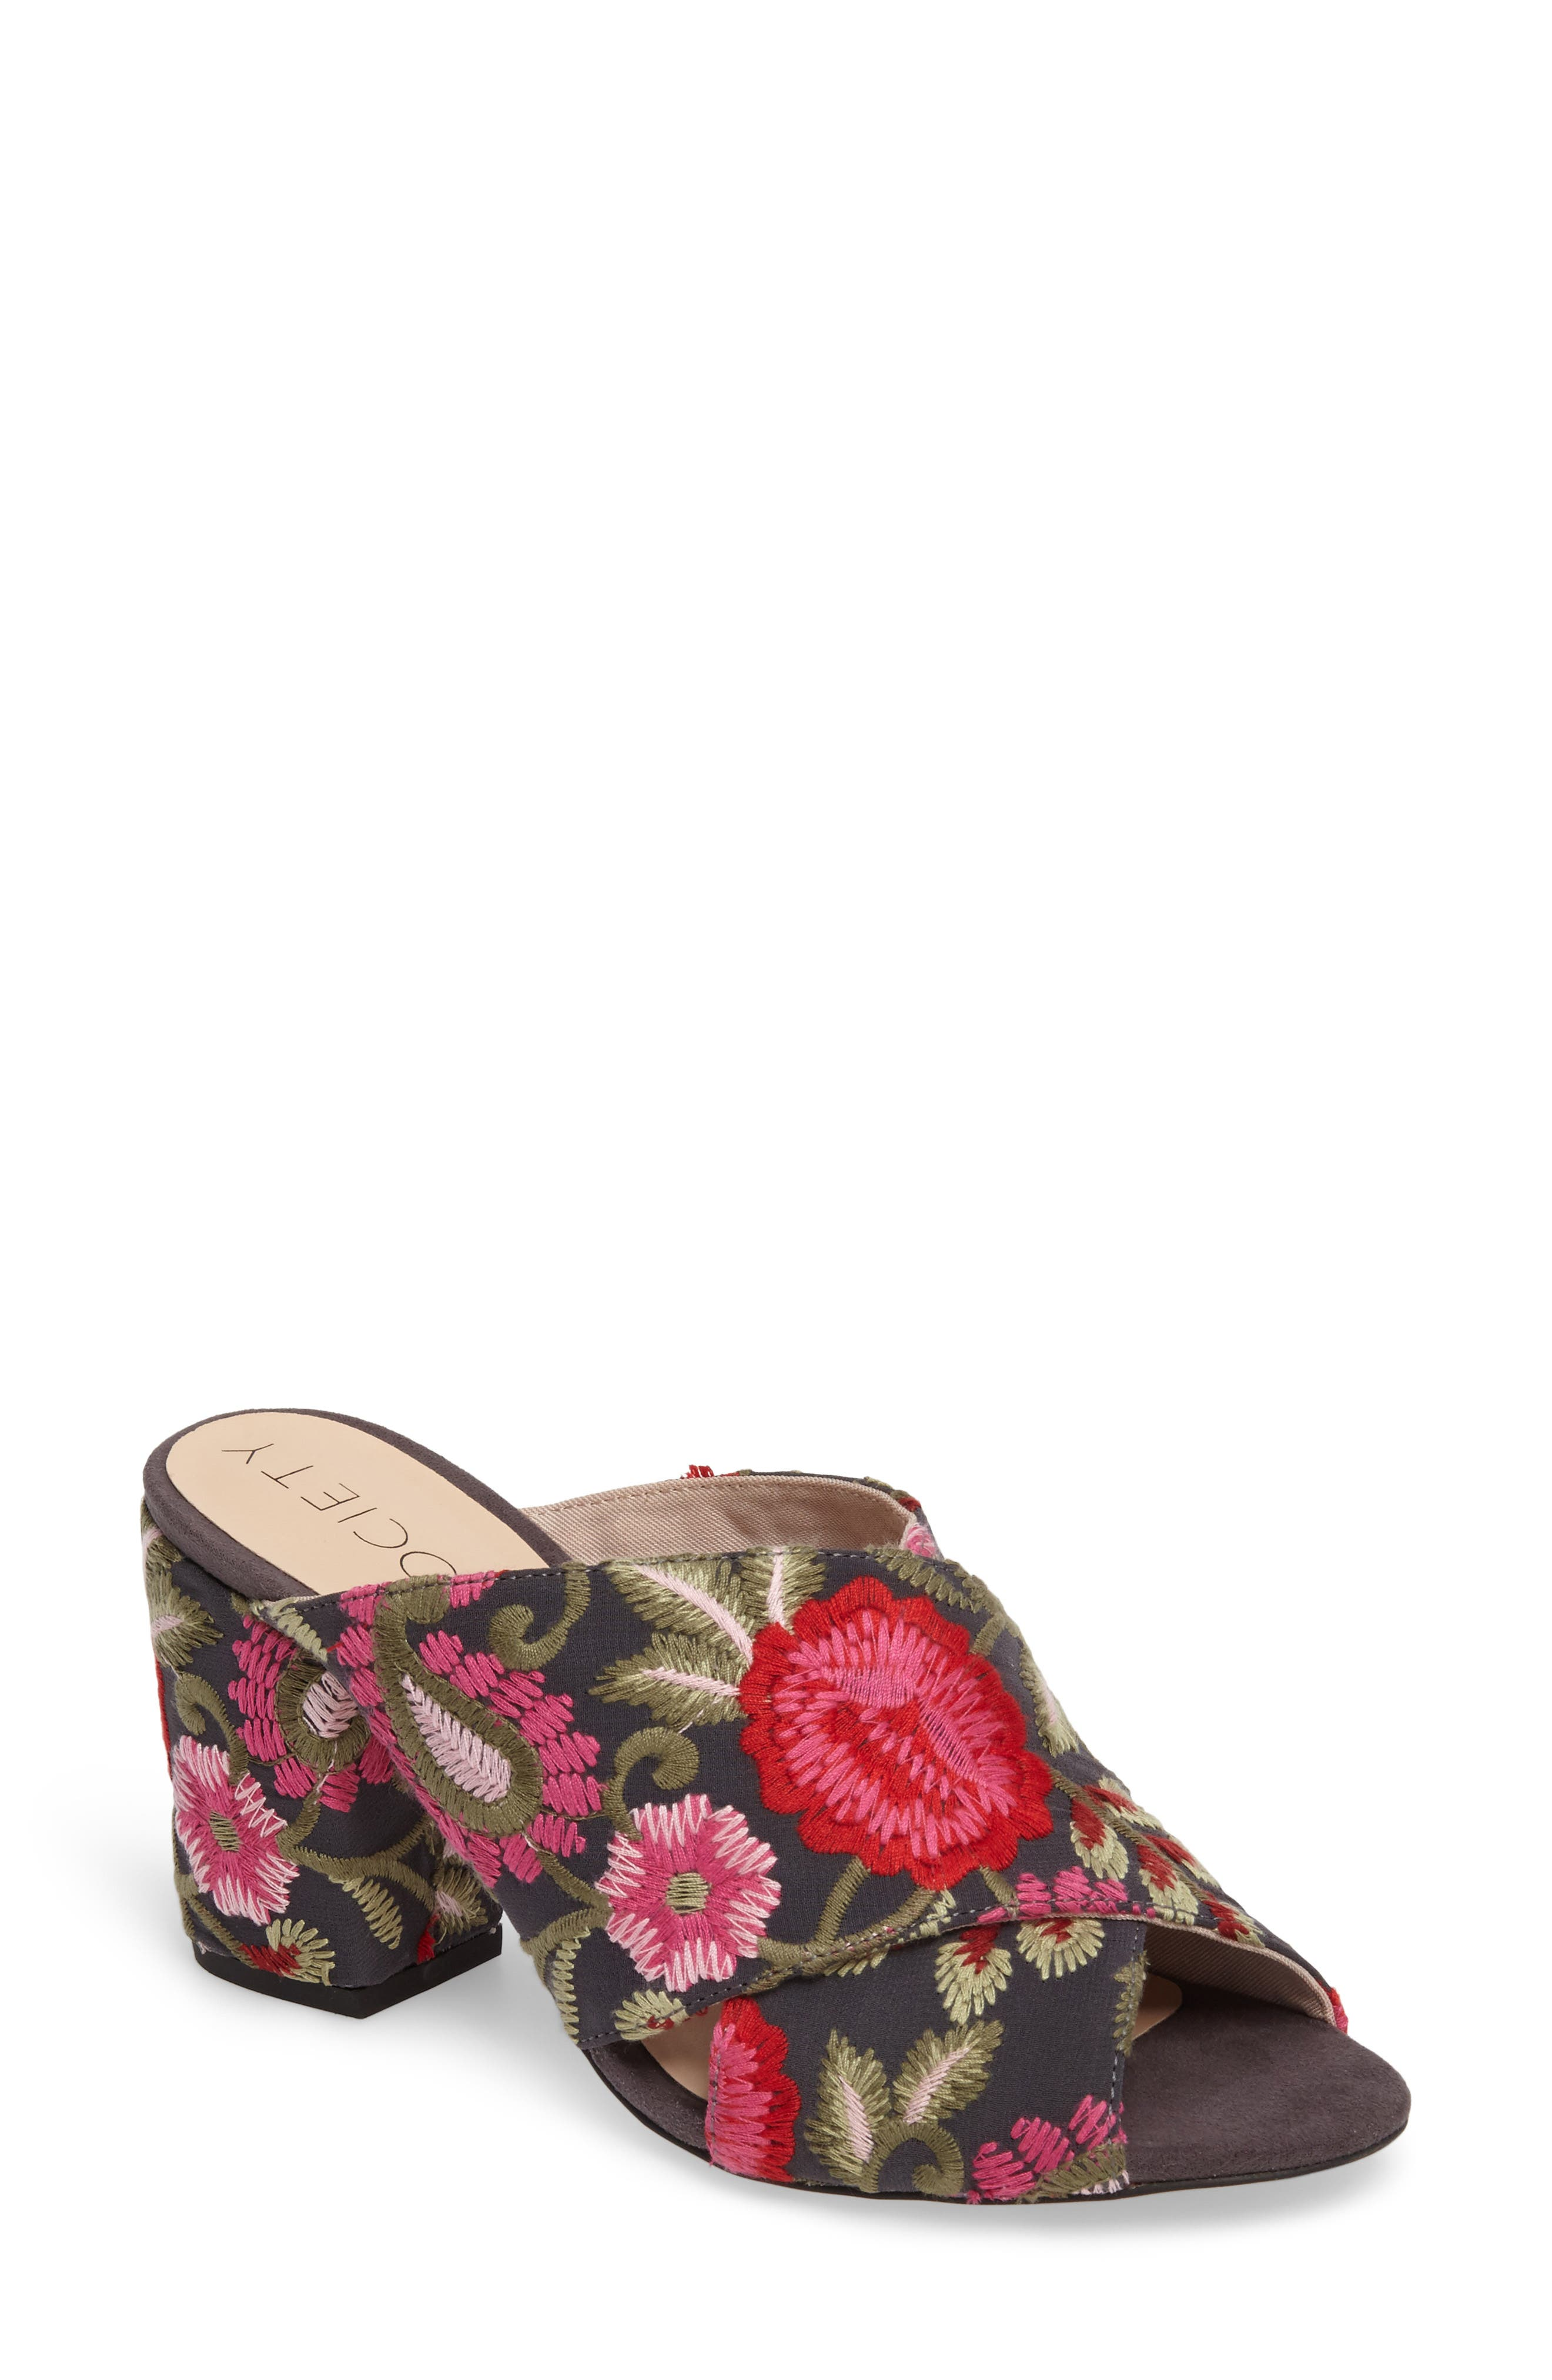 Alternate Image 1 Selected - Sole Society Luella Flower Embroidered Slide (Women)